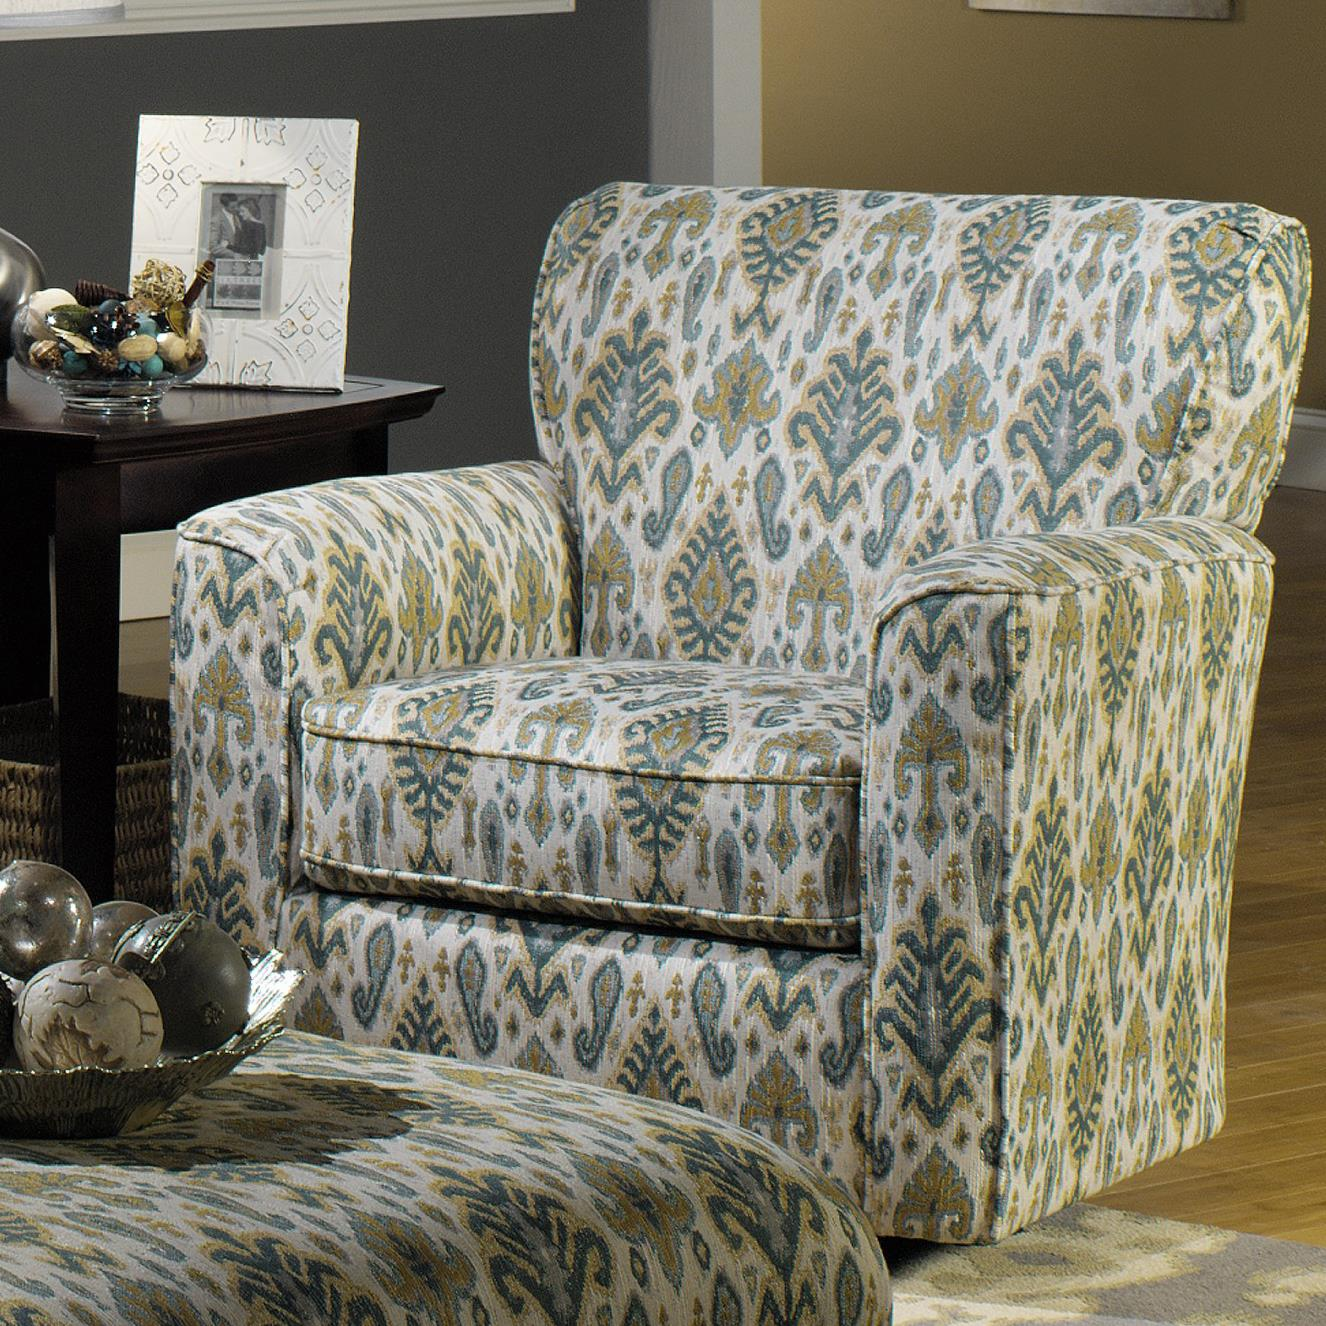 Craftmaster accent chairs contemporary upholstered swivel for Upholstered living room chairs with arms